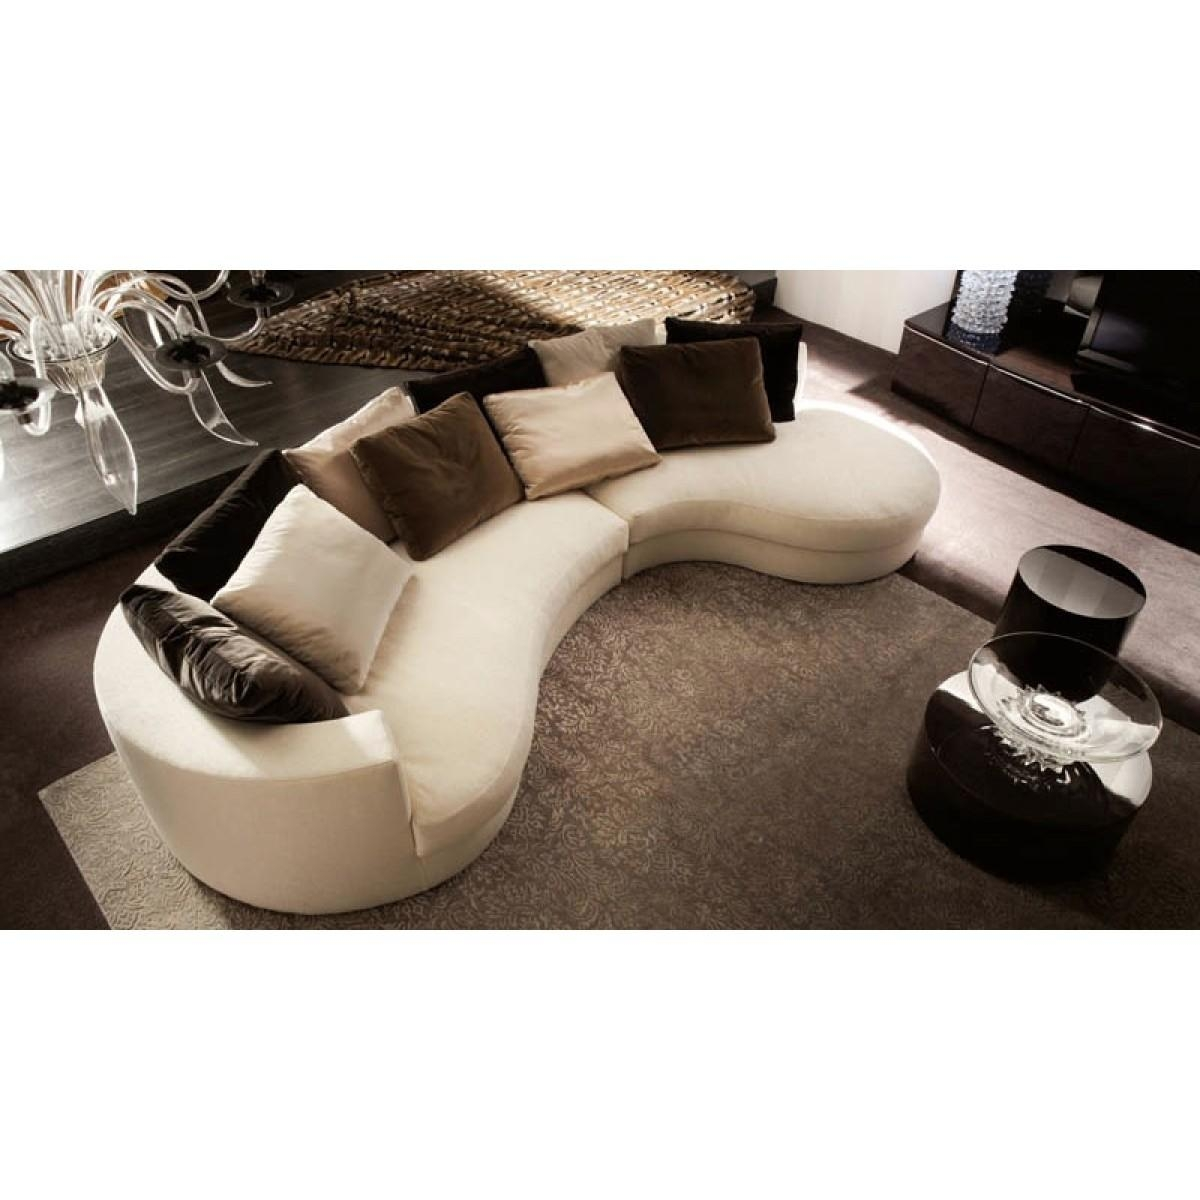 Sofas Center : Stirring Circle Sectional Sofa Photoncept Circular For Semi Sofas (Image 19 of 20)